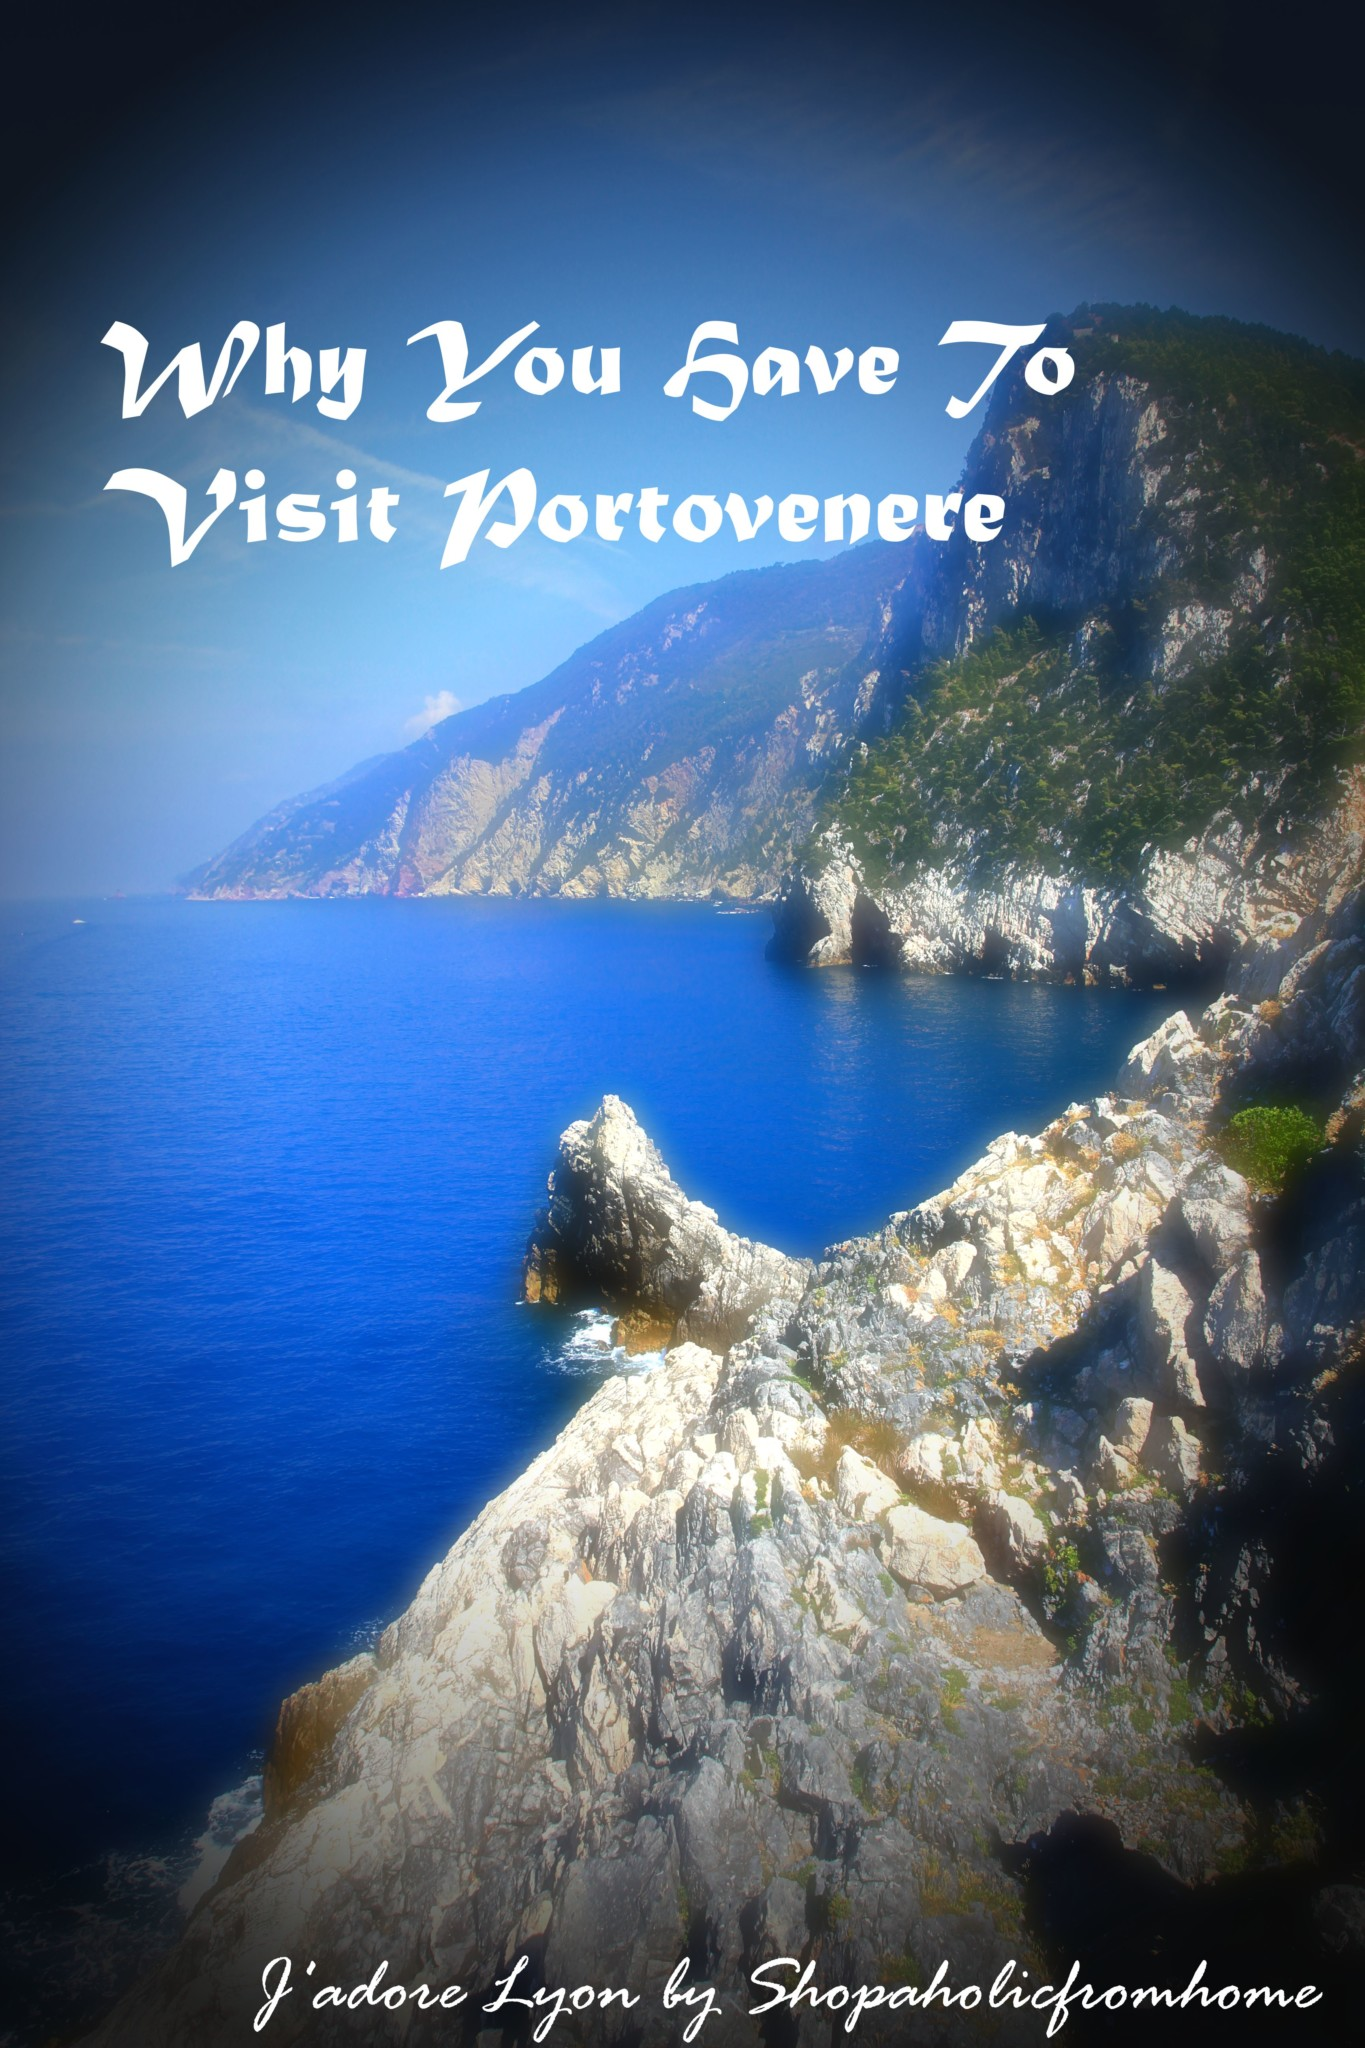 Why you have to visit Portovenere